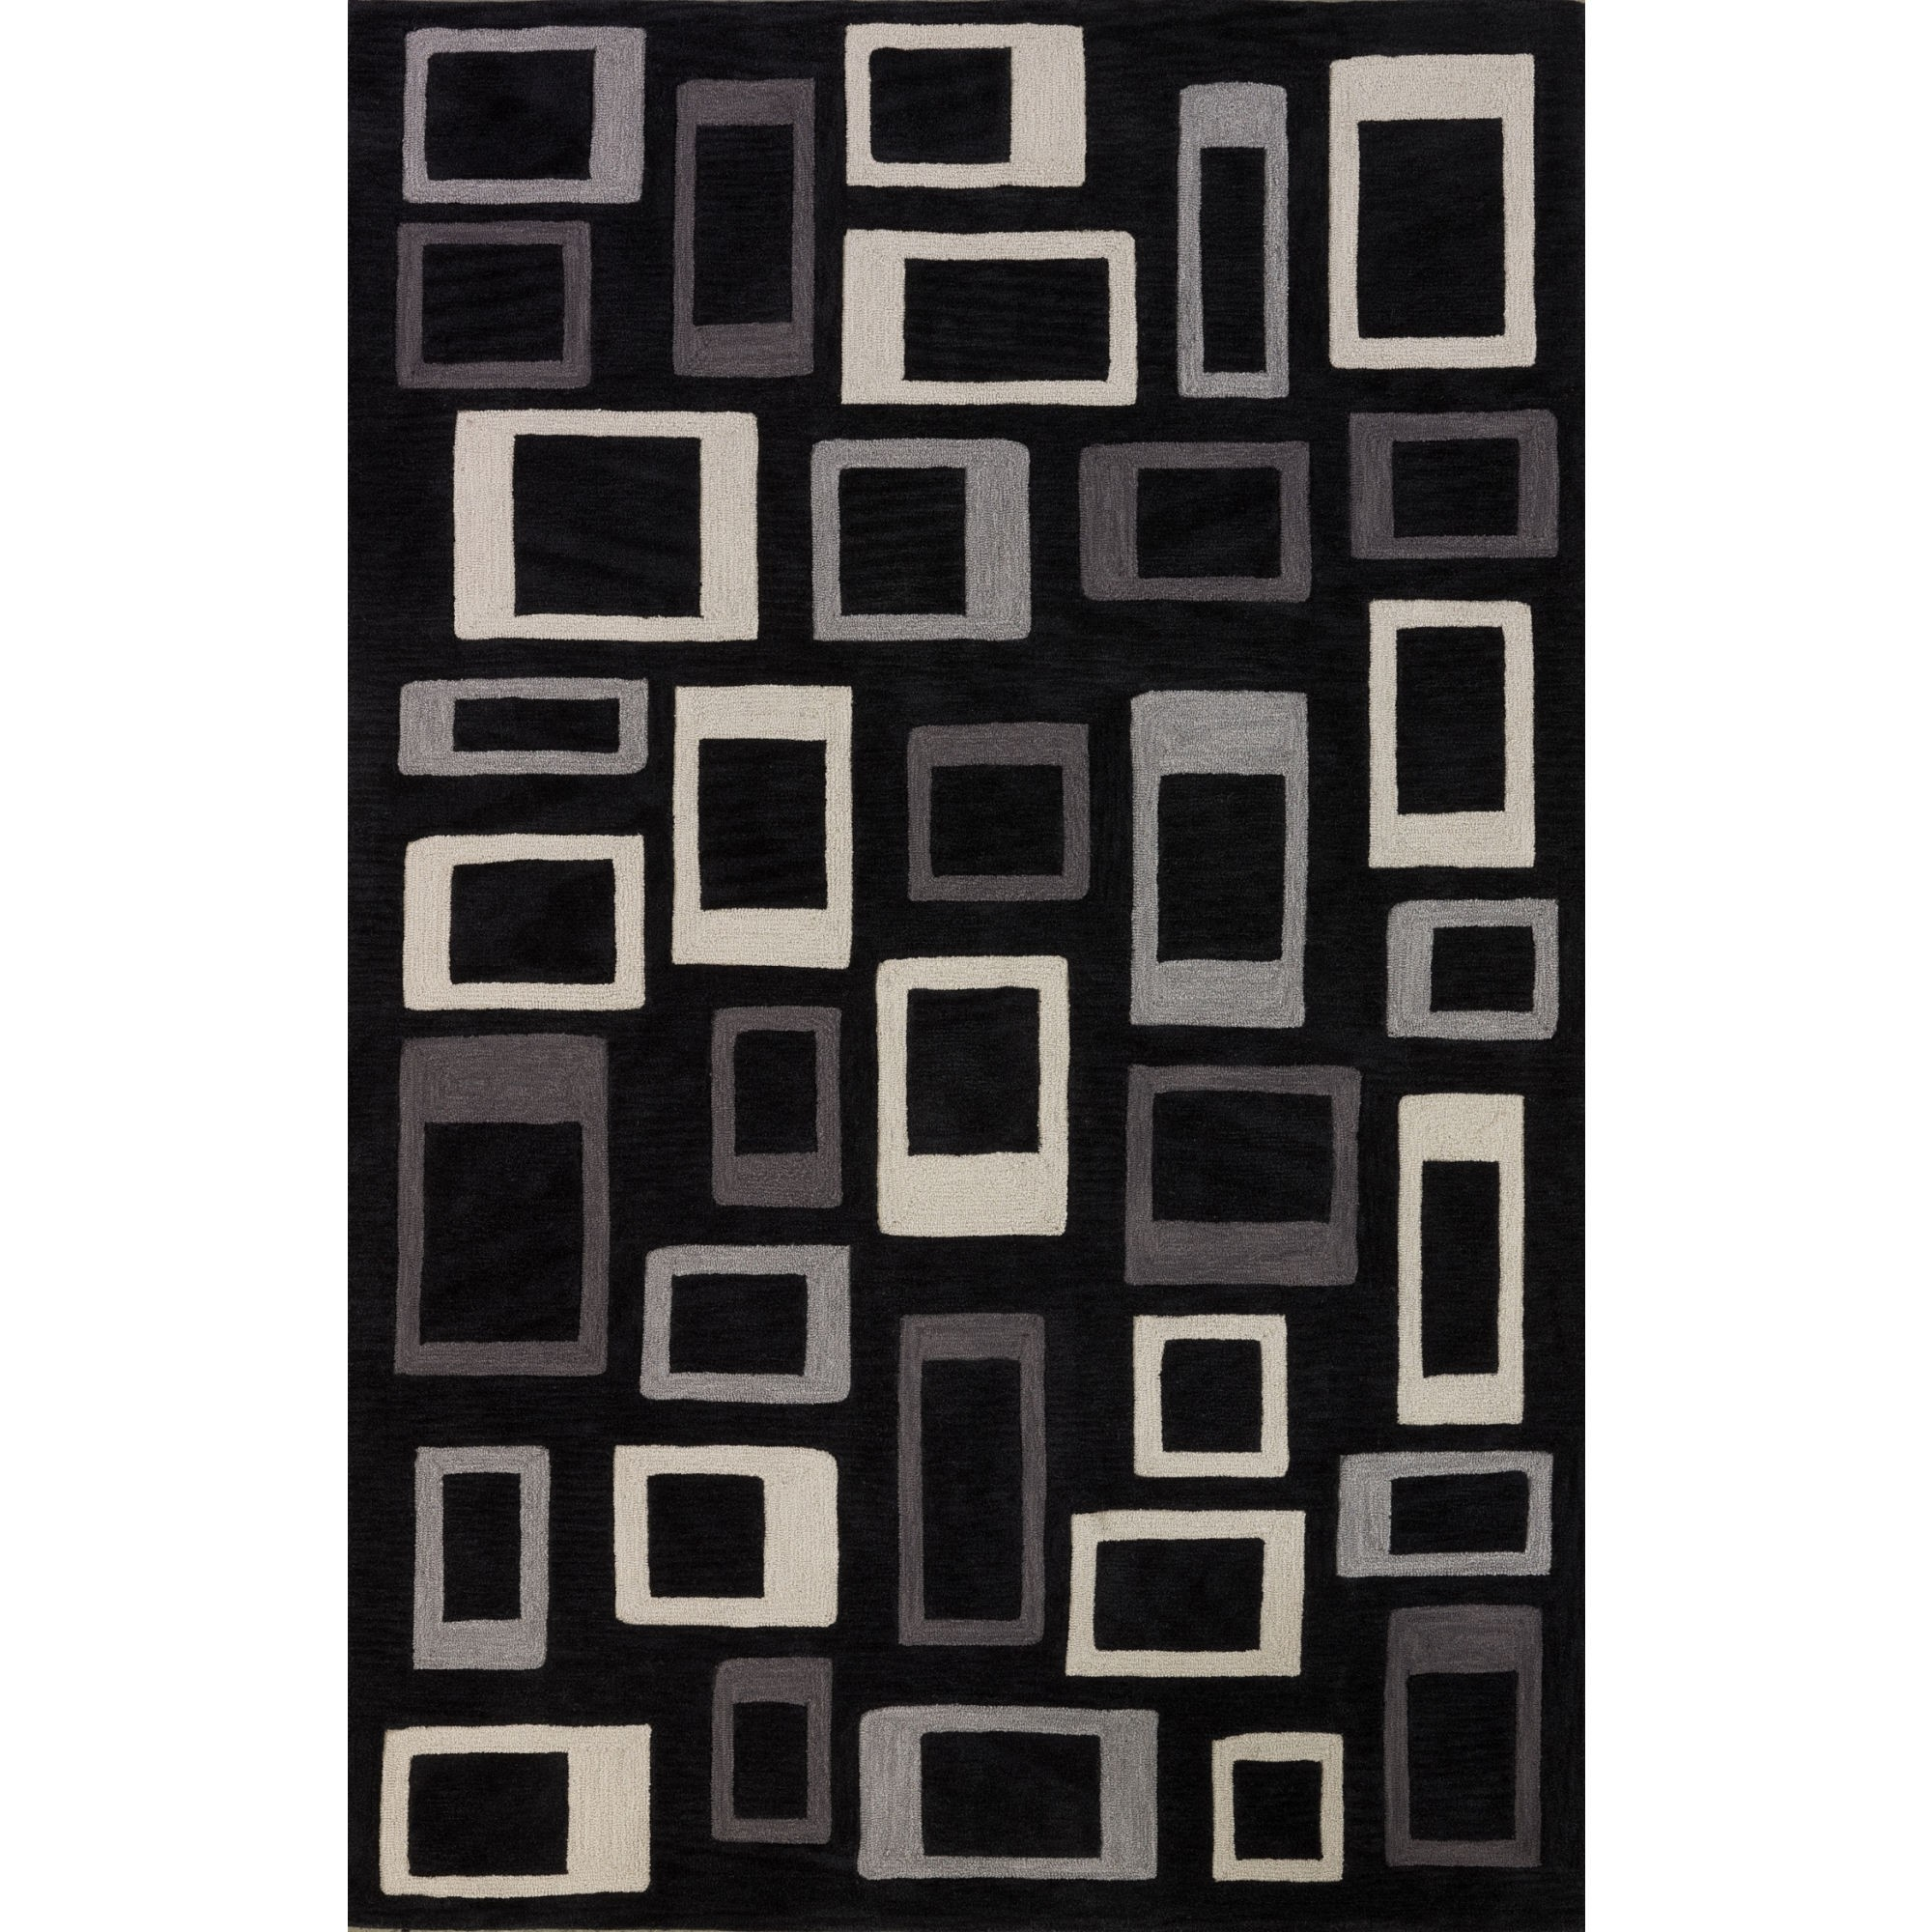 rectangle Black and Gray Rugs Area with checked motif by dalyn rugs for floor decor ideas